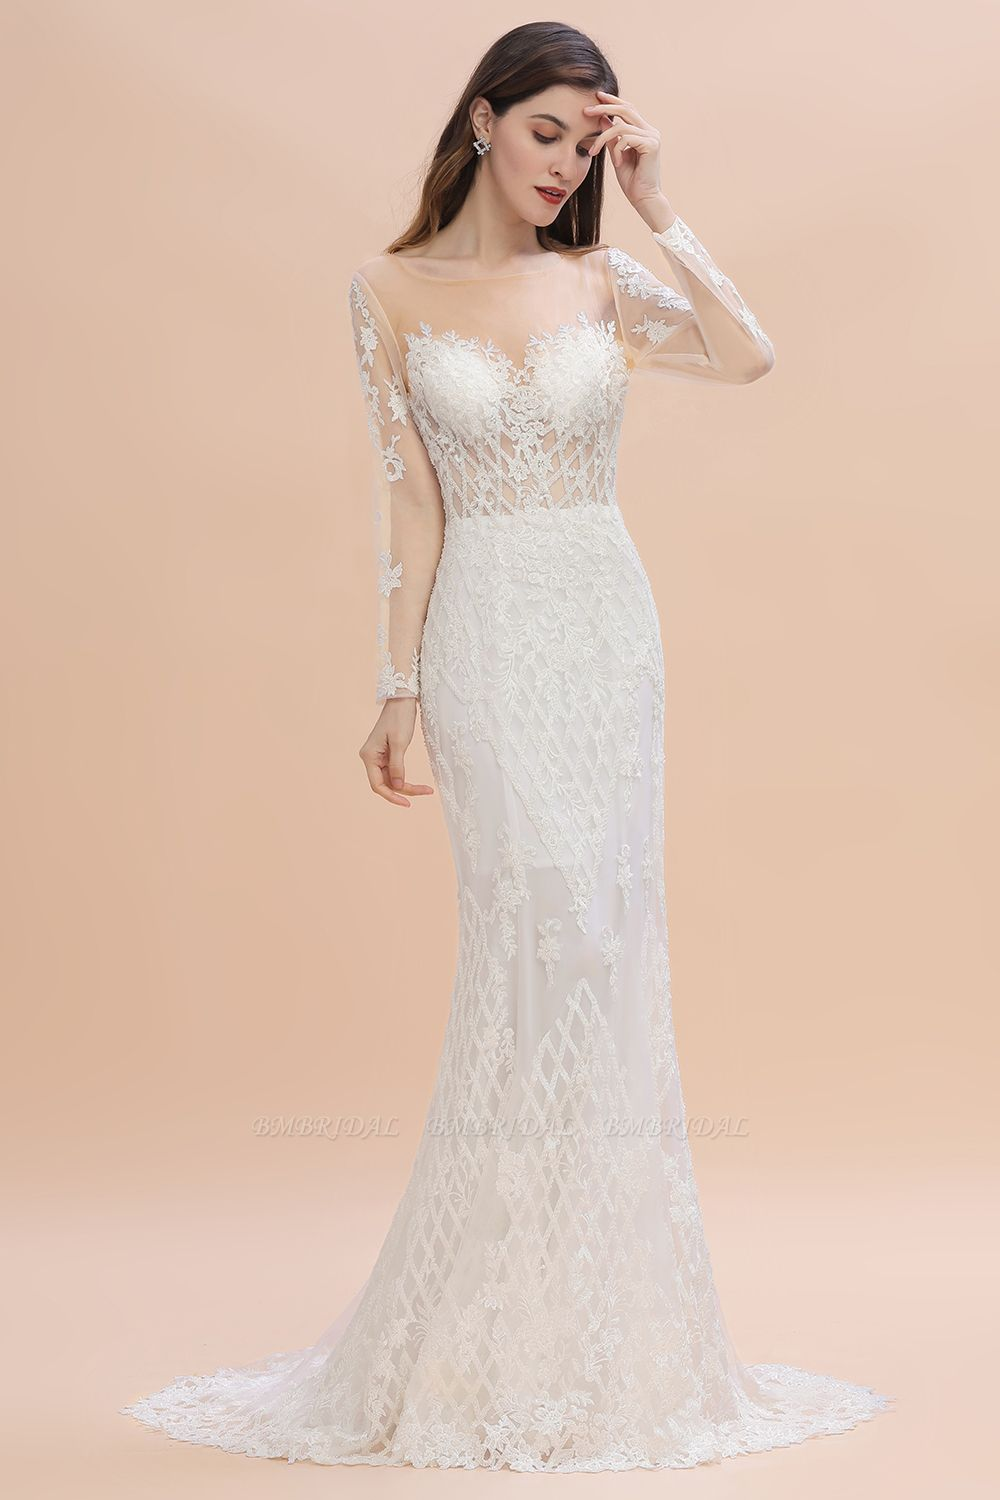 The Guide For Brides To Select Fabulous Wedding Dresses